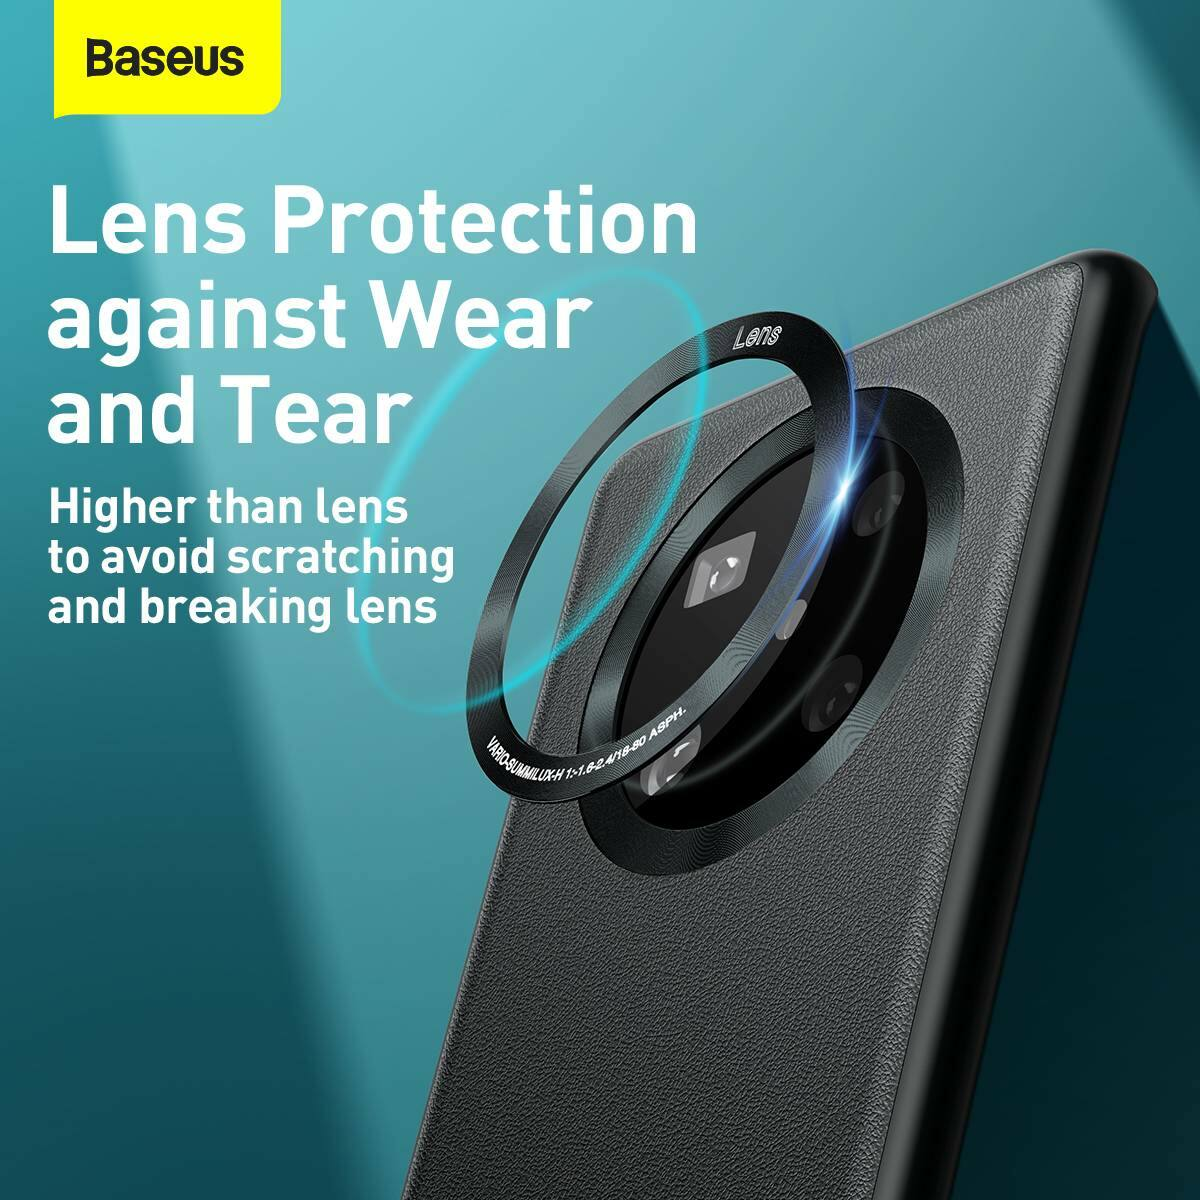 Baseus Huawei Mate 40 Pro+ tok, Alloy Leather, fekete (WIHWMATE40R-A01)